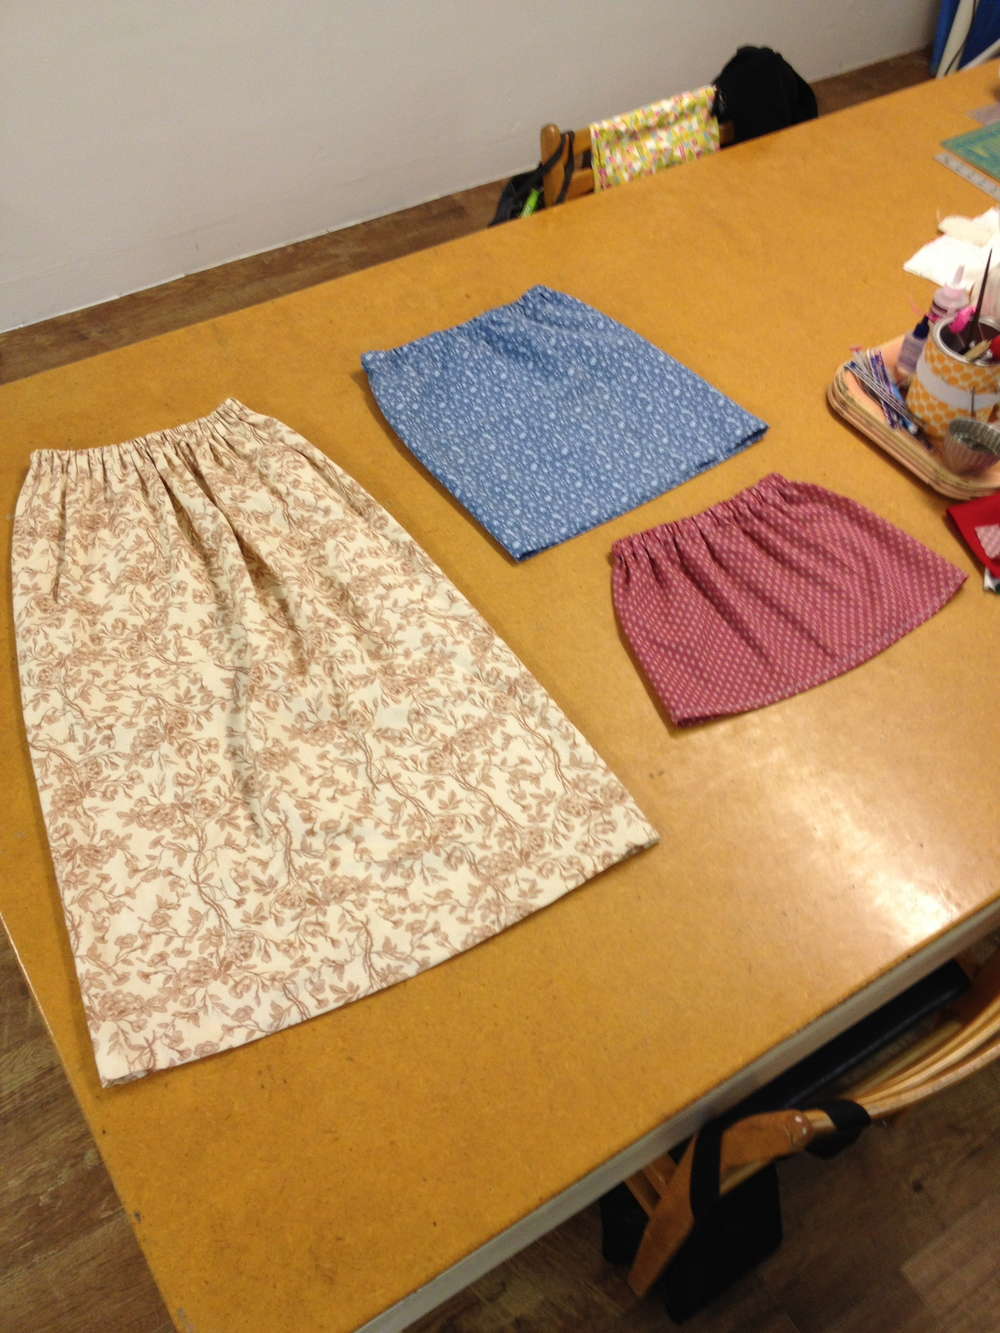 Sew Giving September: Skirts for Patterns for Change